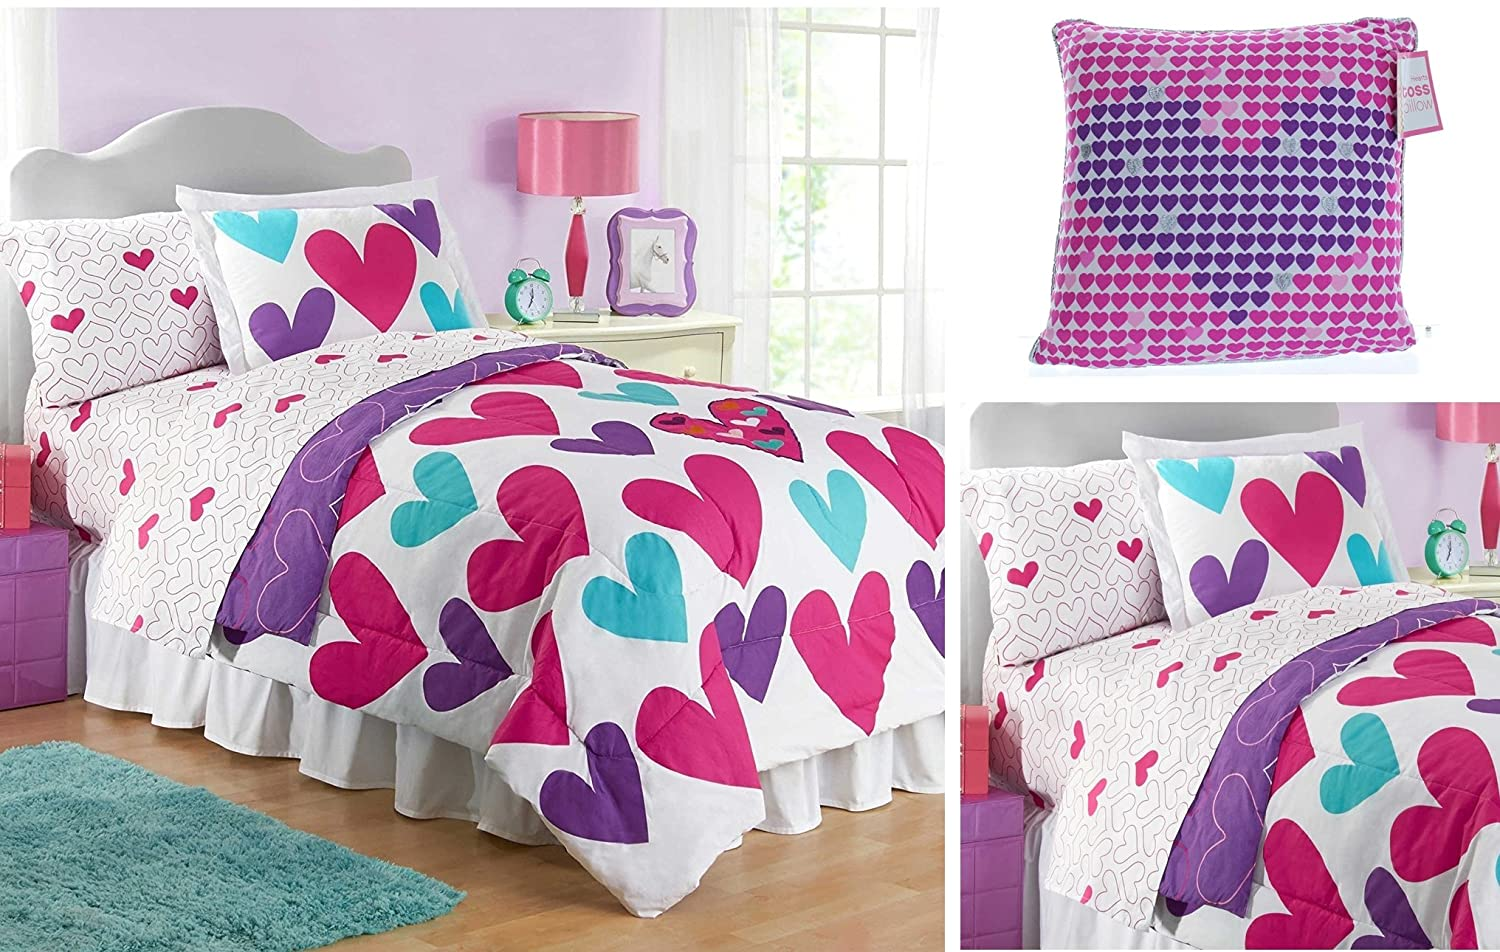 Girls FULL 100% Cotton Pink, Purple, Teal Hearts Comforter & Sheet Set + Decorative Pillow (8pc Bed in a Bag)